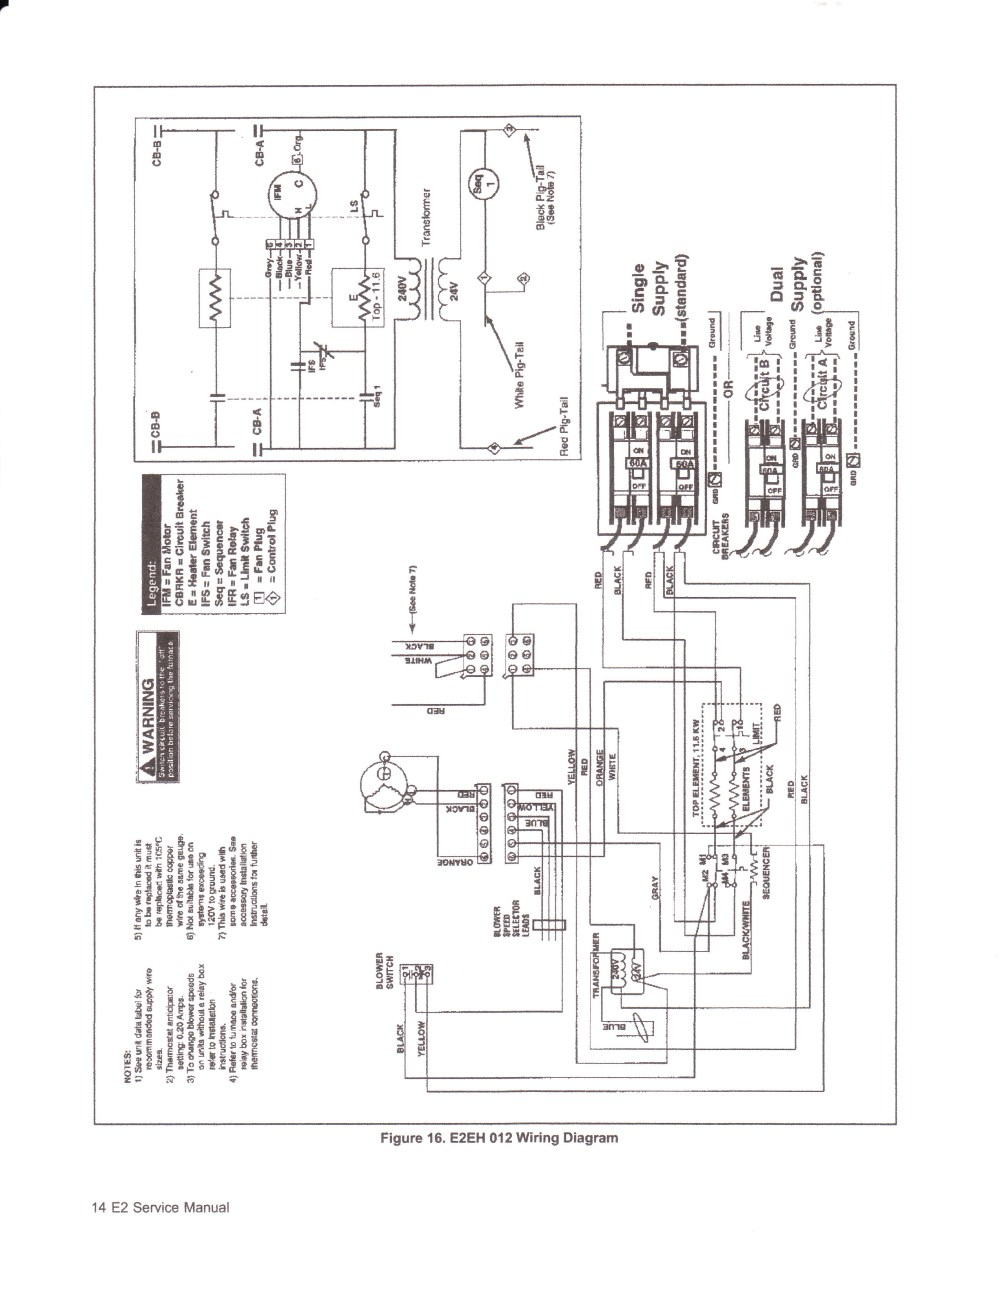 medium resolution of old nordyne furnaces wiring diagram image wiring diagram review gibson gas furnace wiring